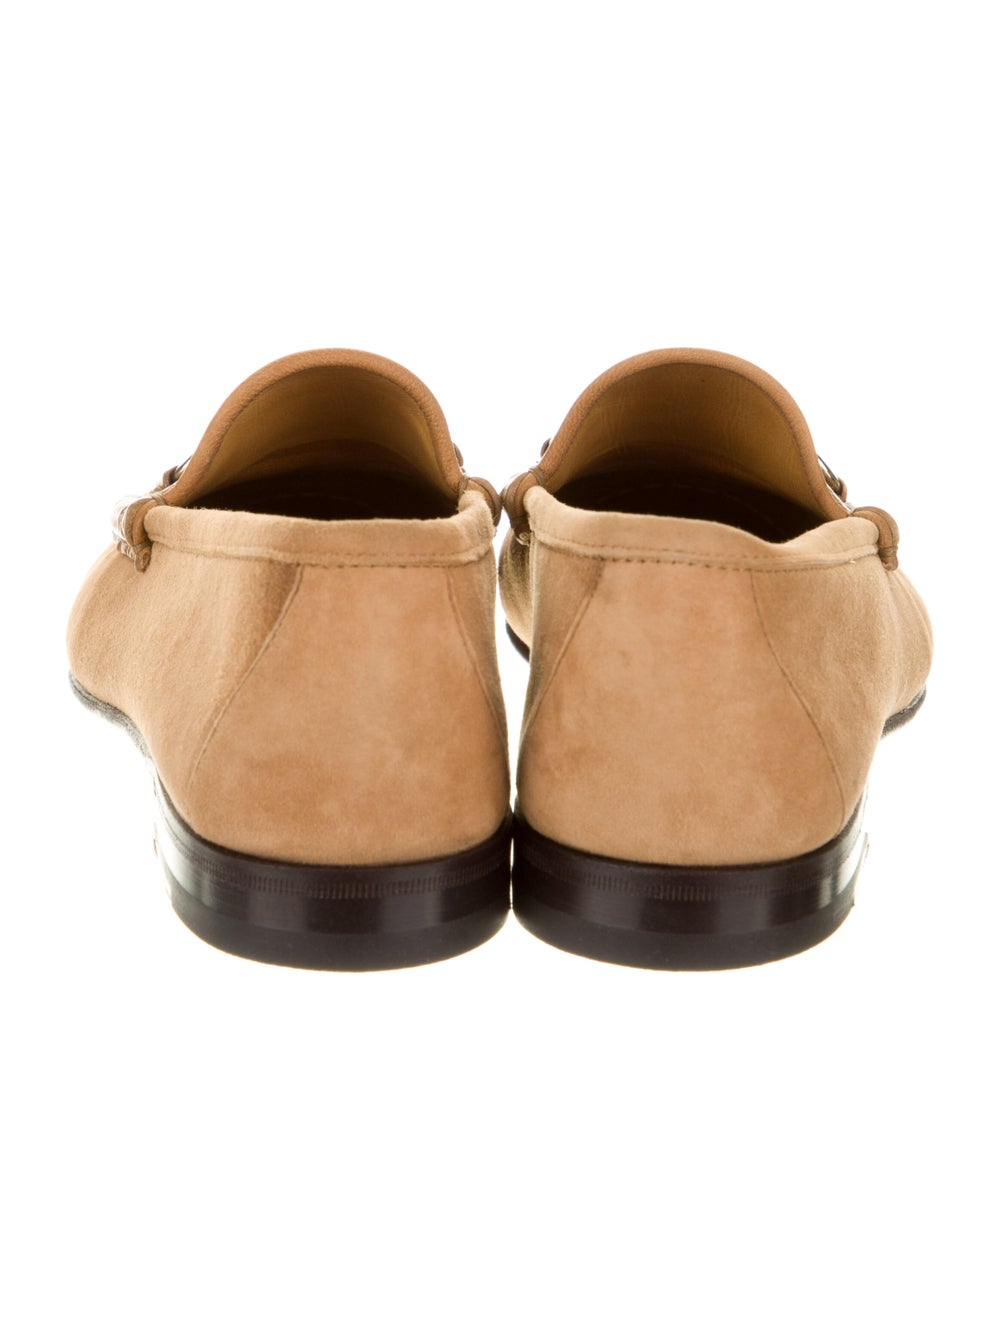 Gucci Horsebit Accent Suede Dress Loafers Brown - image 4